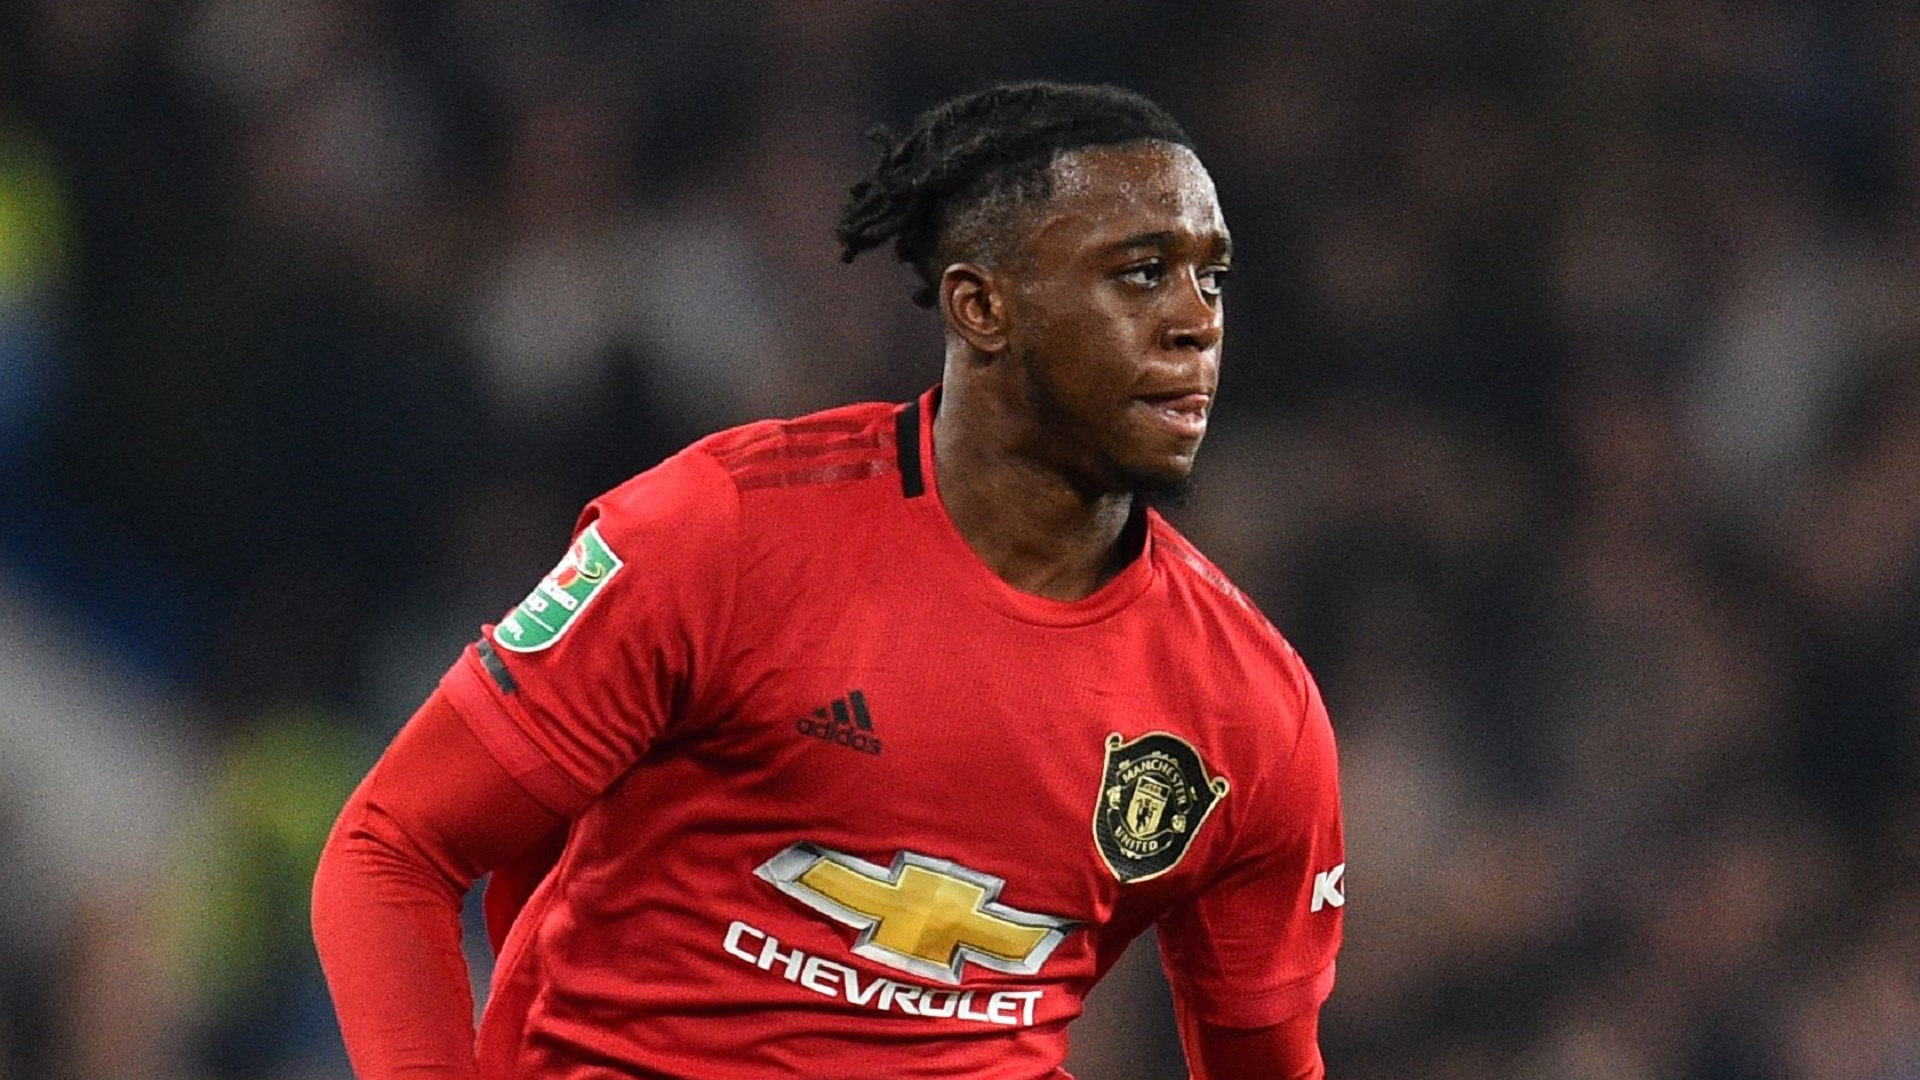 Solskjaer wants bissaka provide more assist - Bóng Đá